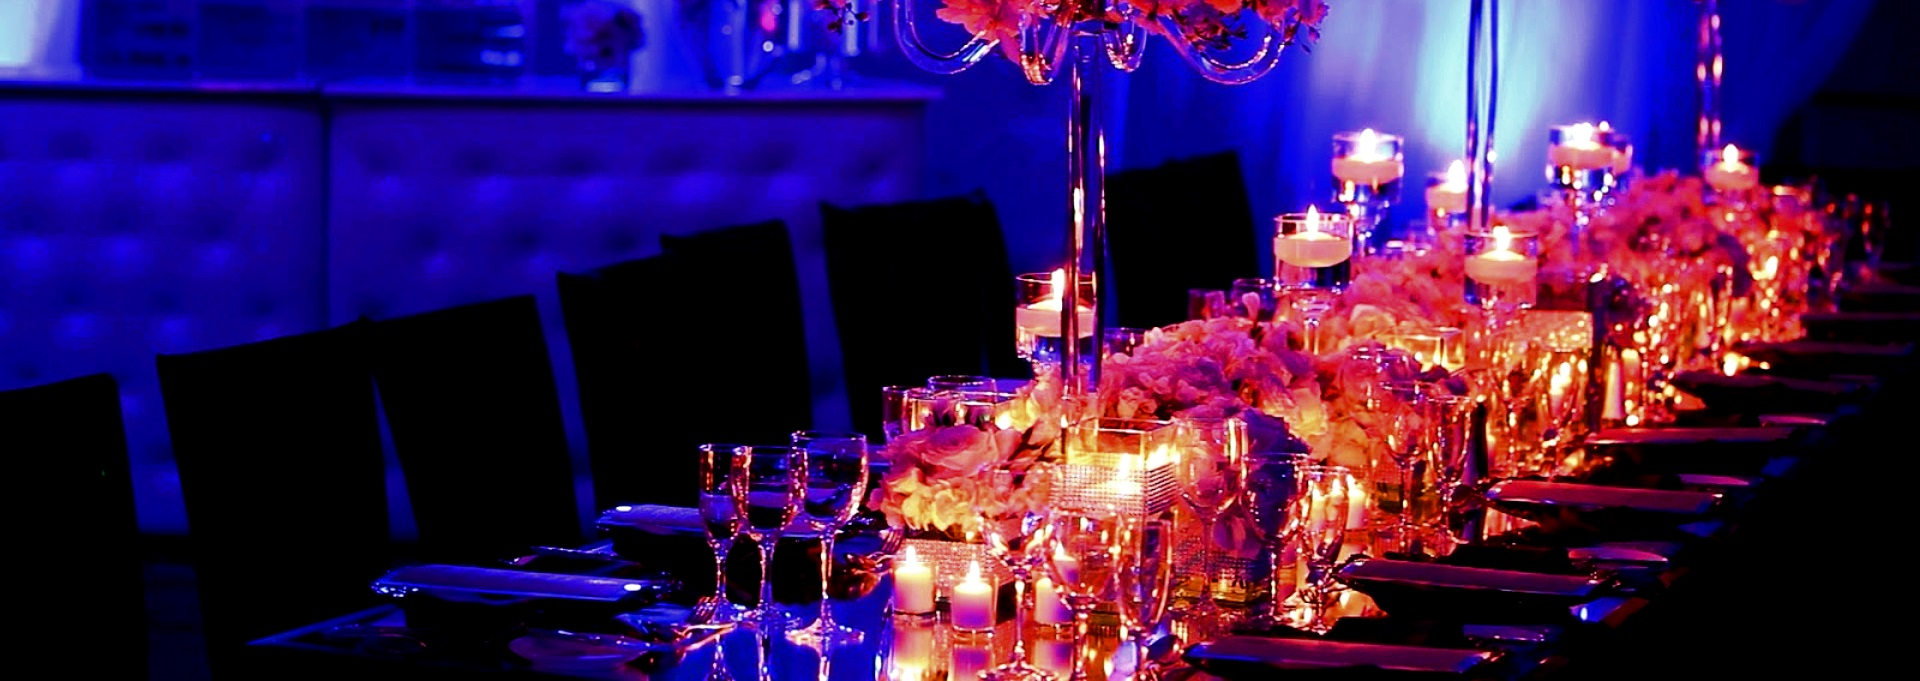 Make your corporate events stand out happy new year 2015 greeting make your corporate events stand out kristyandbryce Images